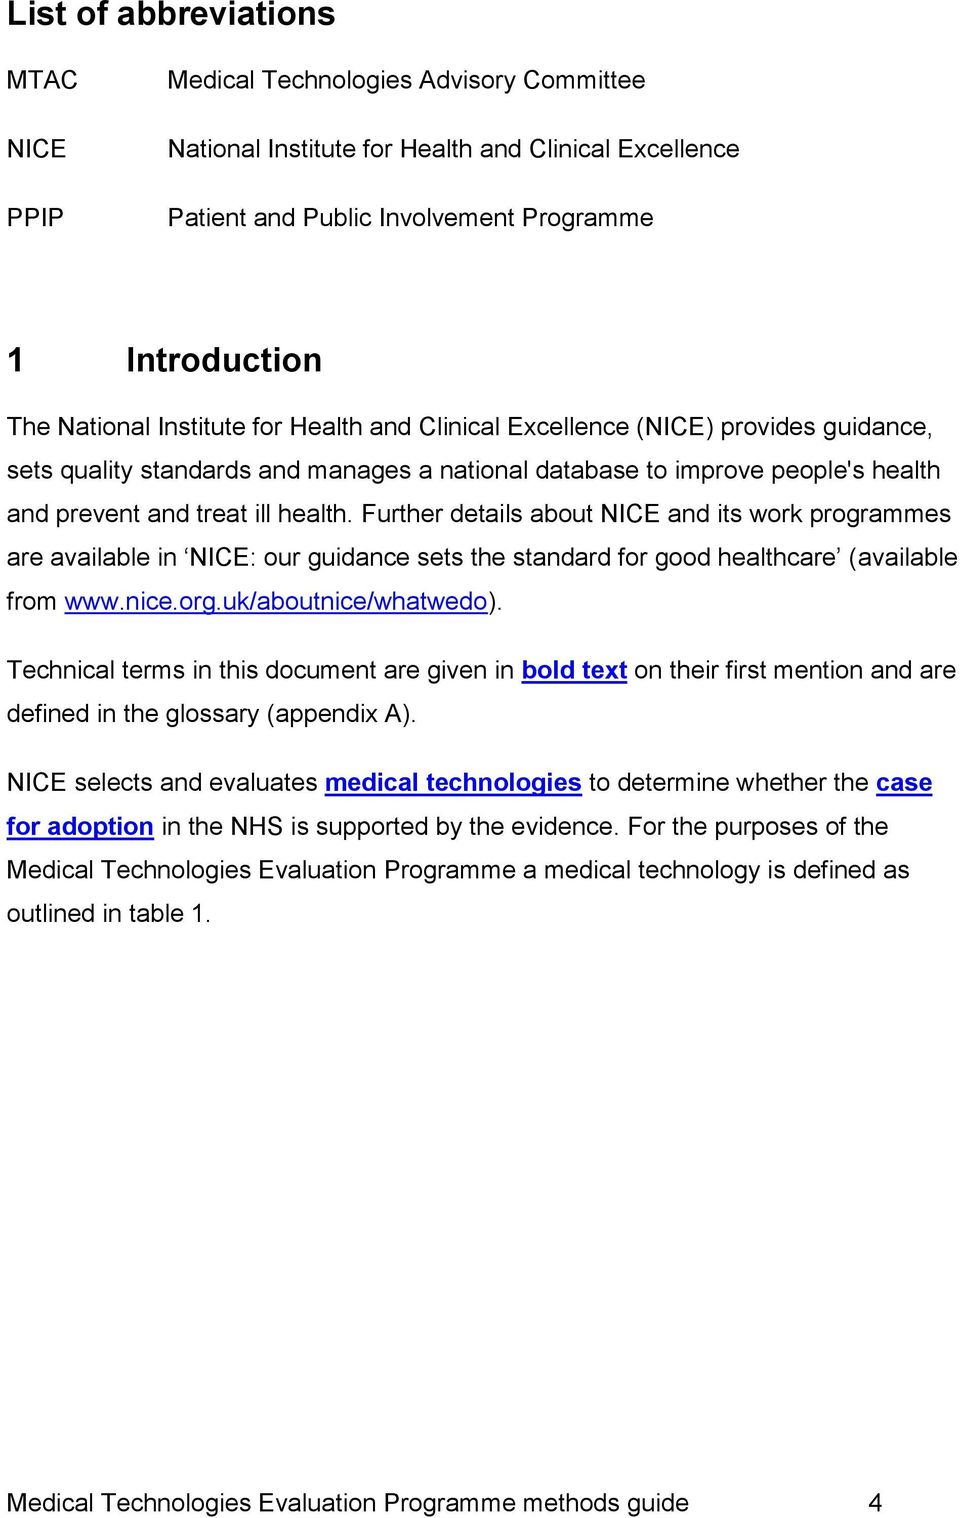 Further details about NICE and its work programmes are available in NICE: our guidance sets the standard for good healthcare (available from www.nice.org.uk/aboutnice/whatwedo).